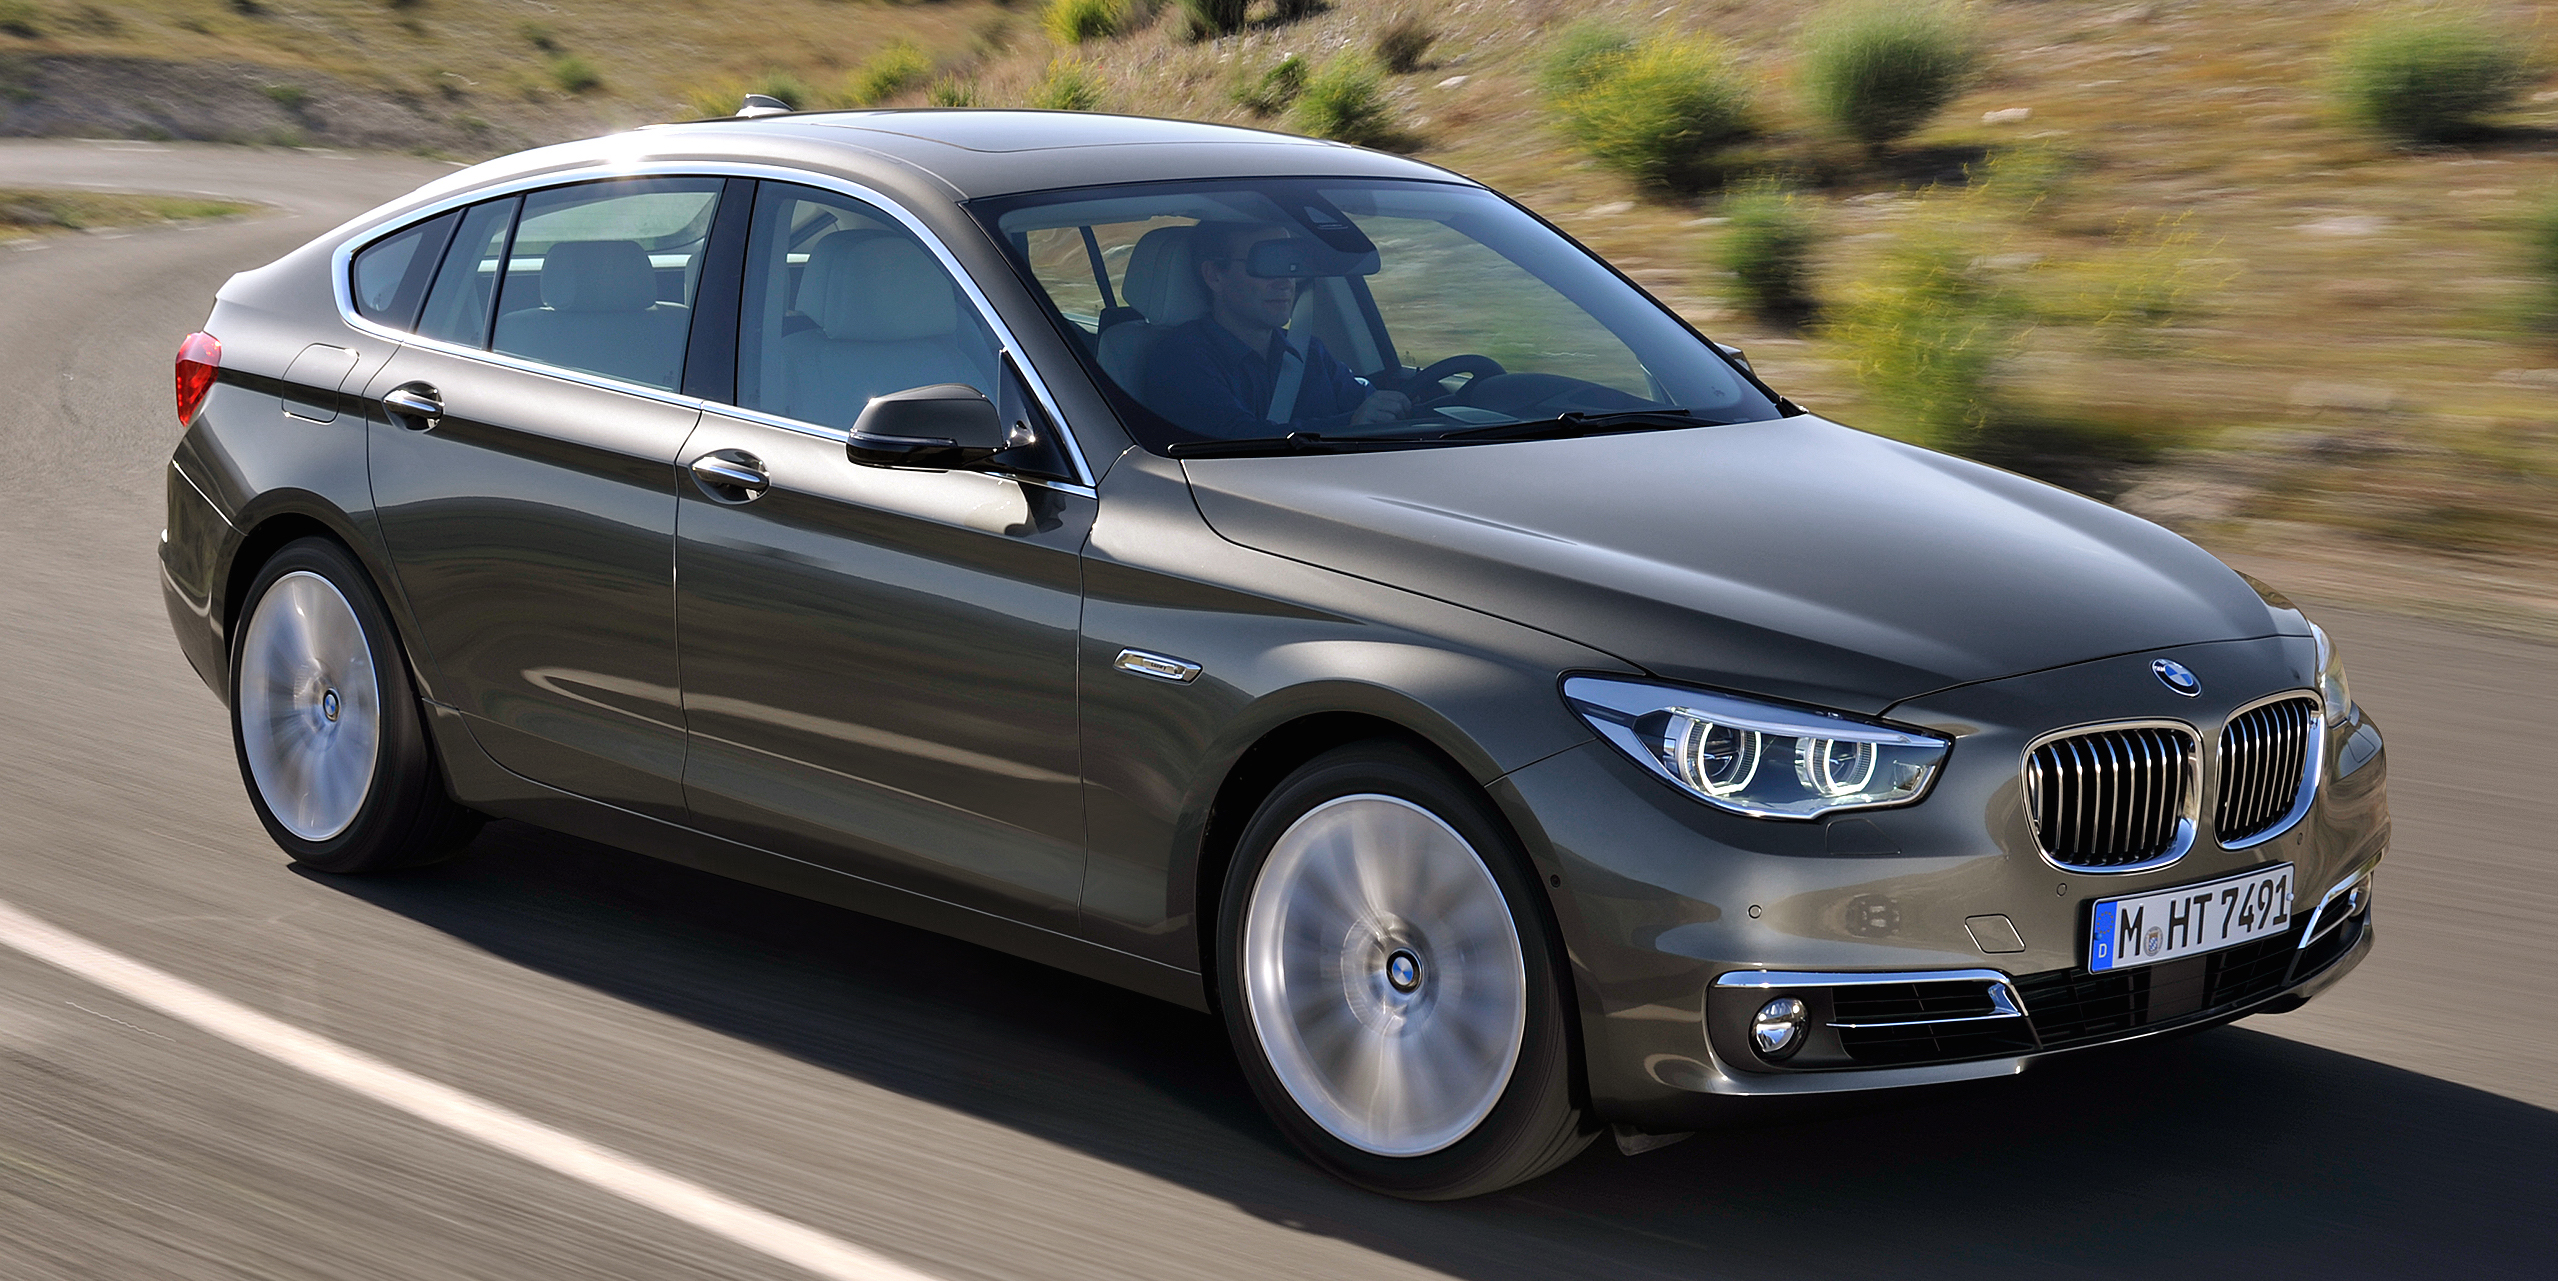 Bmw I Series >> F10 BMW 5 Series sales exceed two million mark Paul Tan - Image 476248